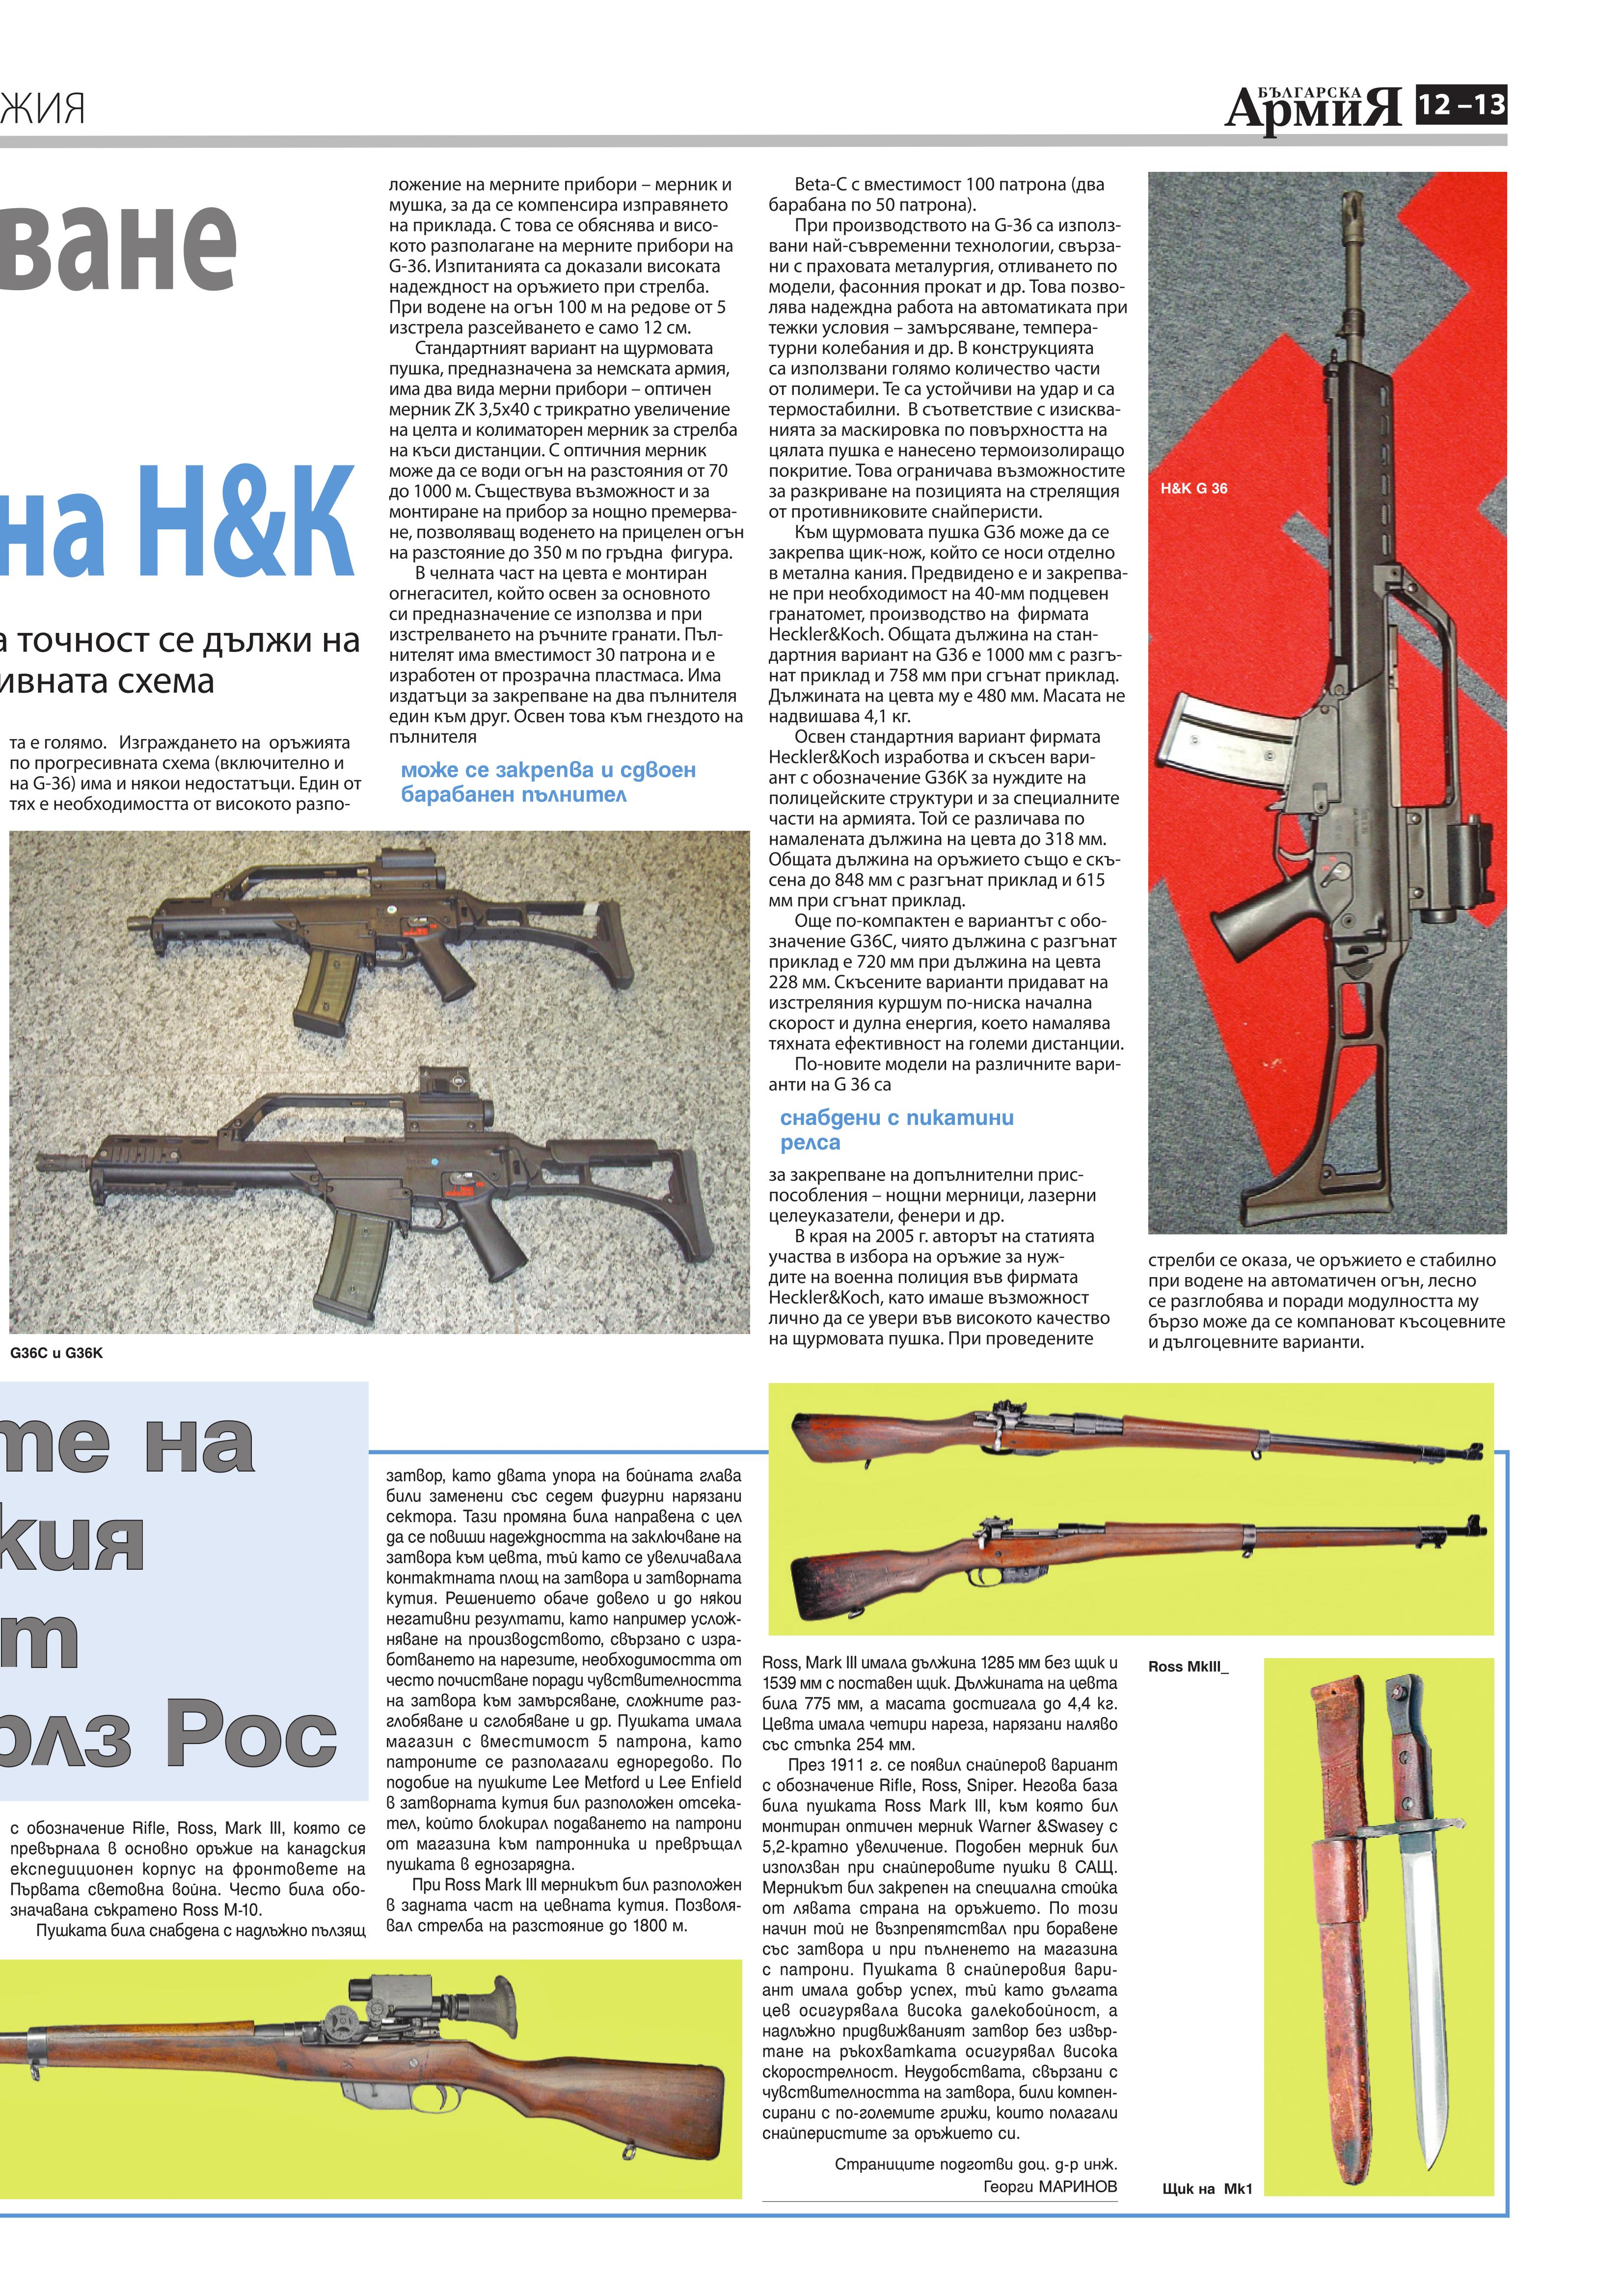 https://www.armymedia.bg/wp-content/uploads/2015/06/13.page1_-137.jpg